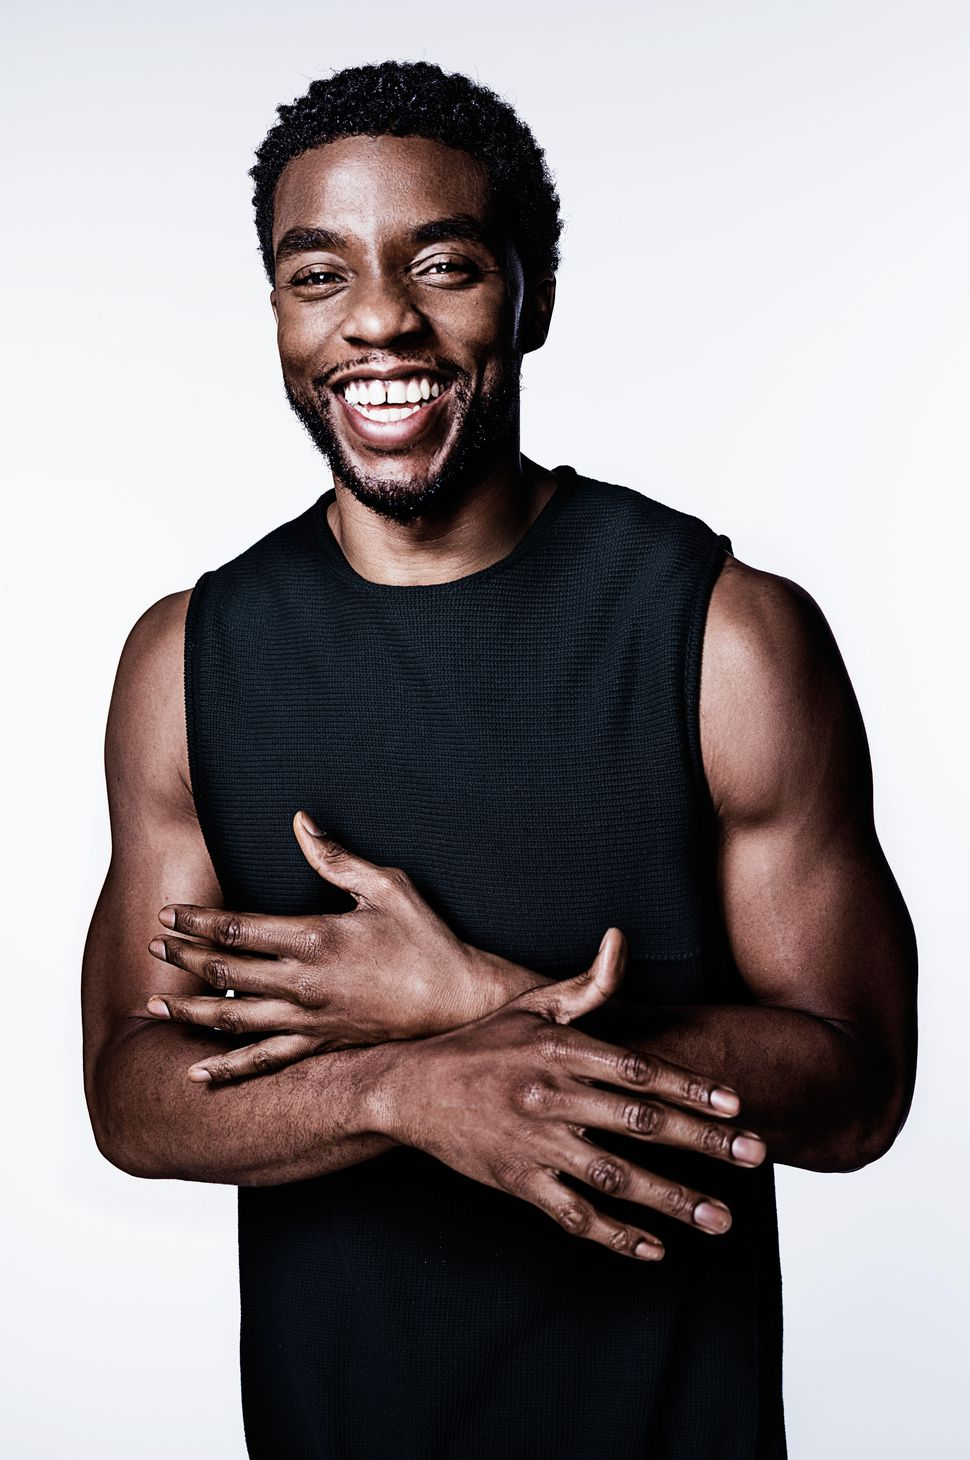 Howard University's Chad Boseman stars in Marvel's Black Panther